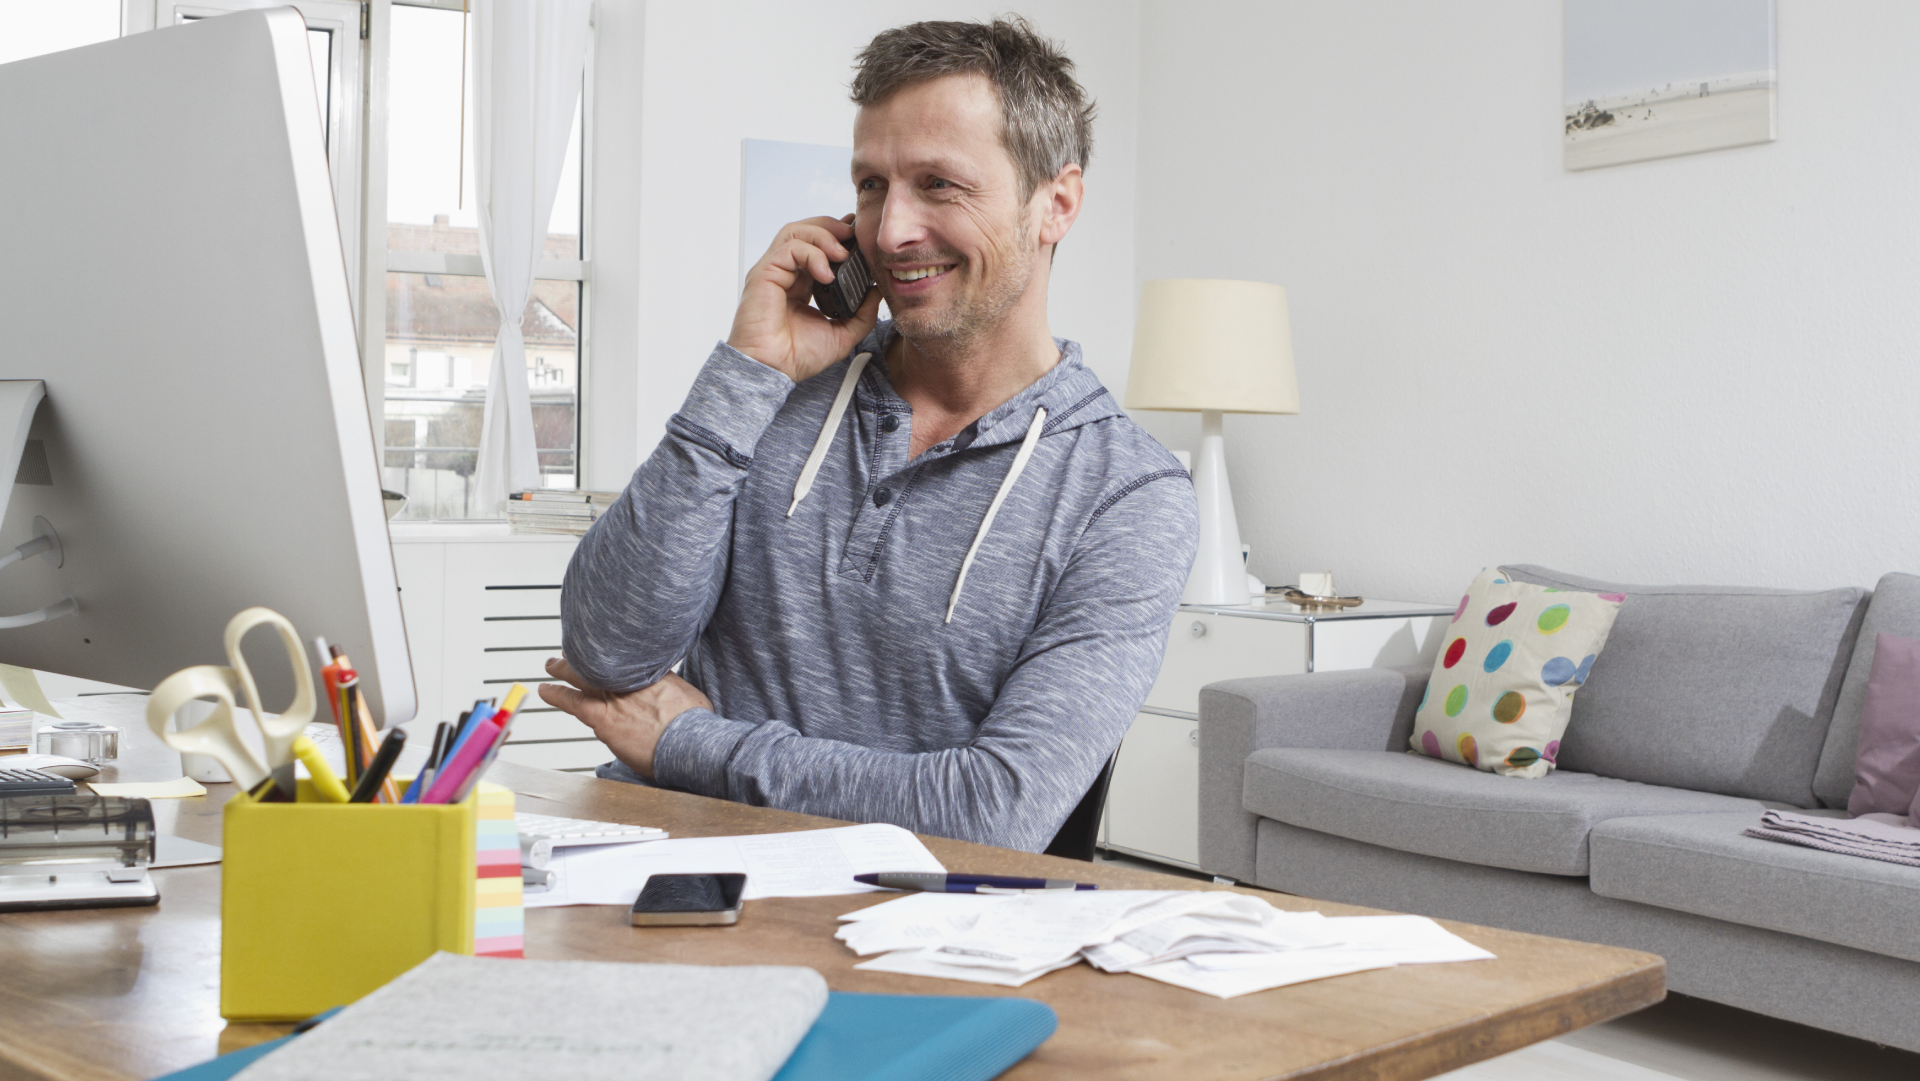 MOVOX helping small business work remotely